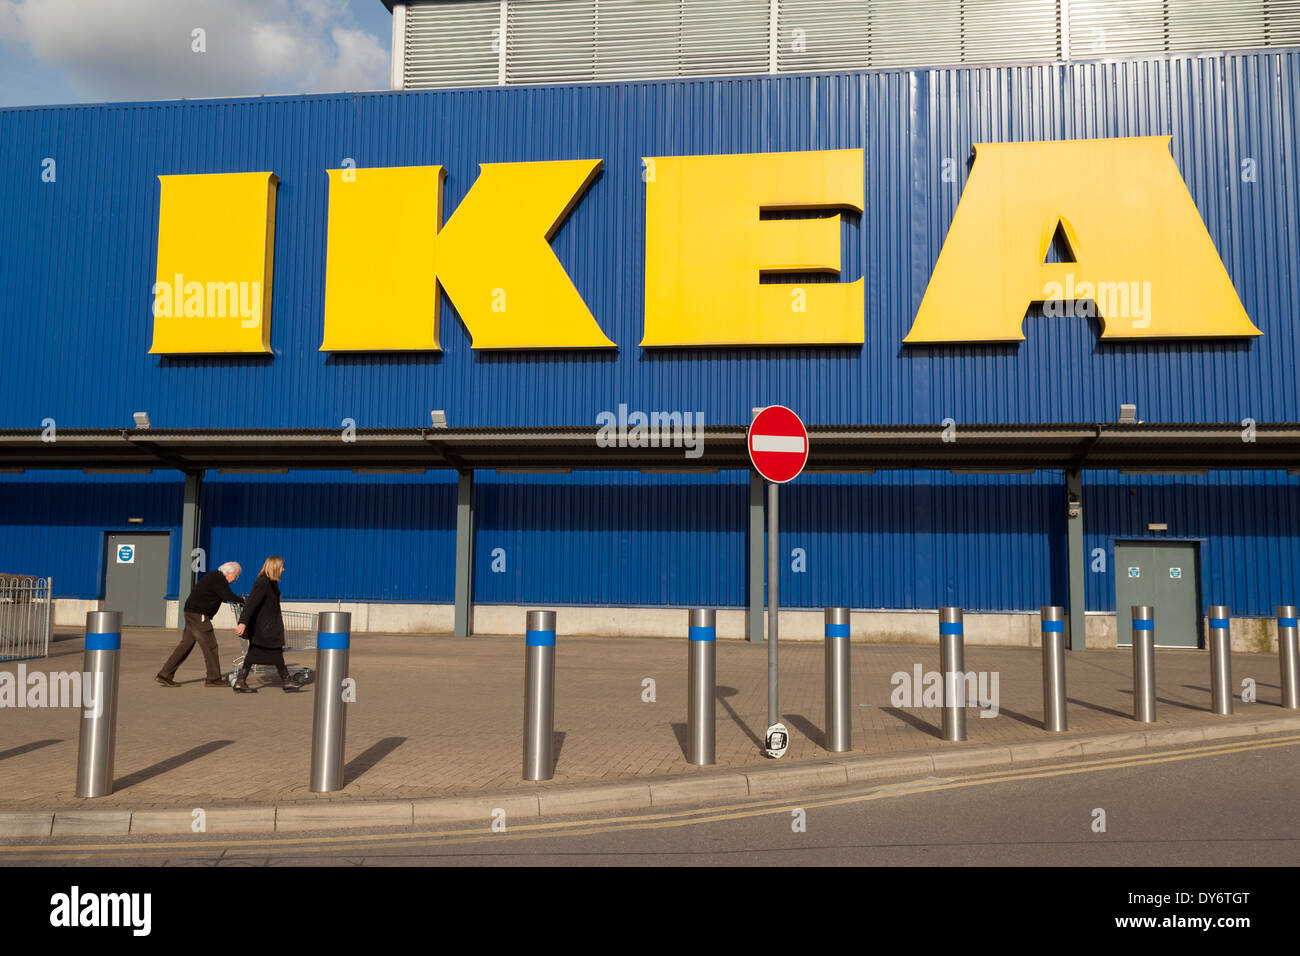 IKEA store exterior with sign, Wembley, London UK - Stock Image